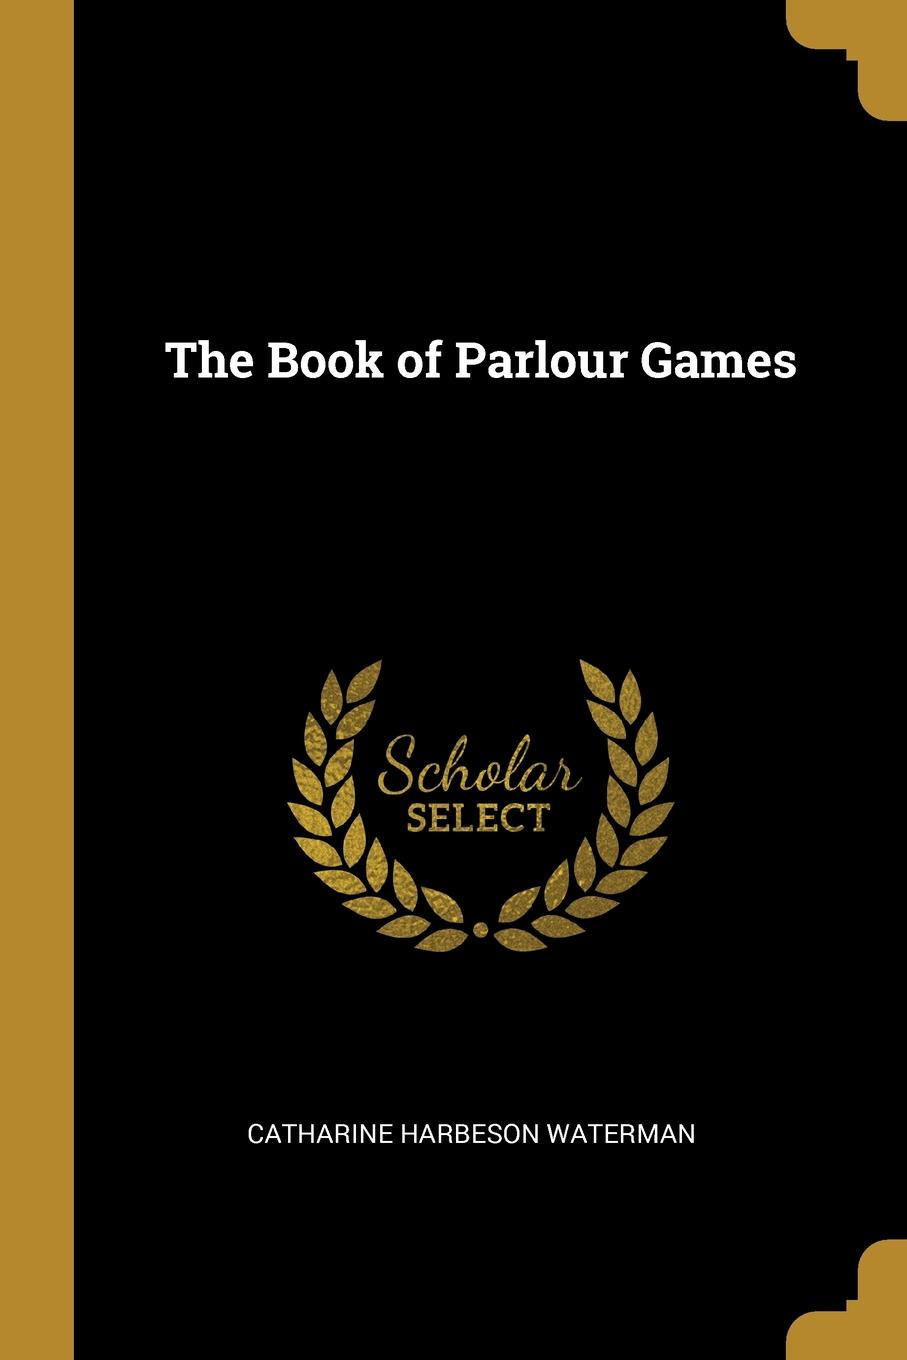 Catharine Harbeson Waterman. The Book of Parlour Games